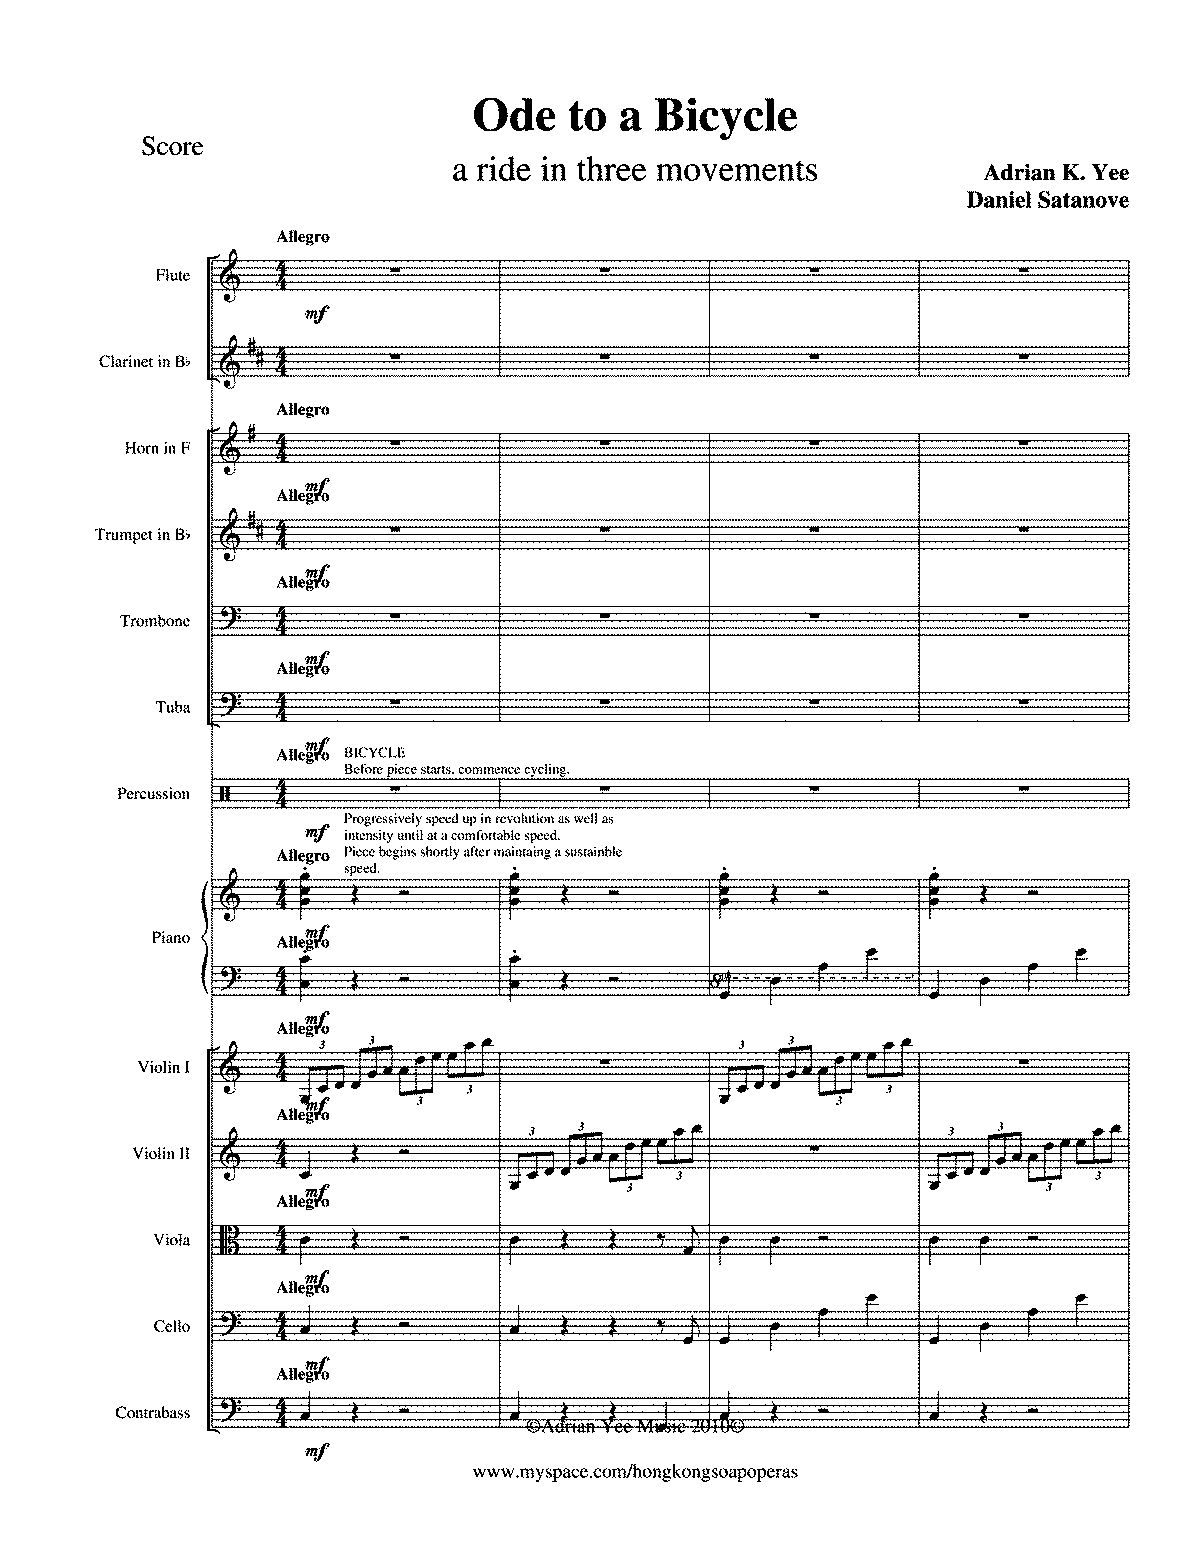 PMLP129067-Ode to a Bicycle a ride in three movements (Score).pdf